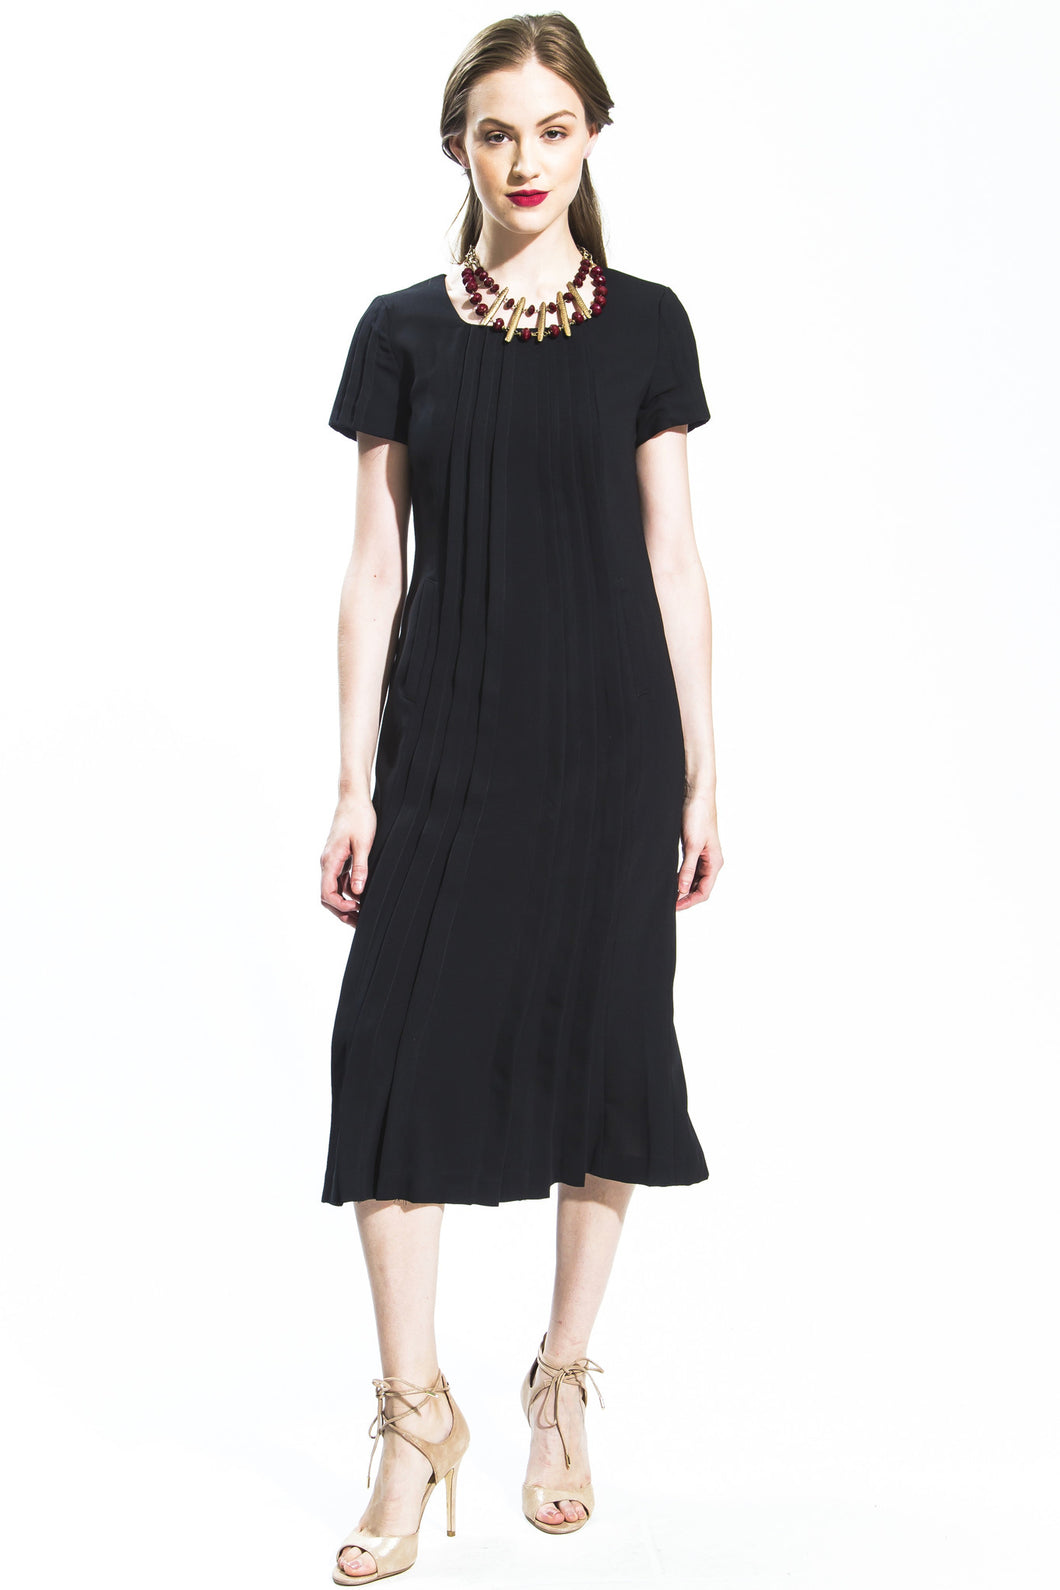 Sun Pleated Dress (Black) Style # 1139